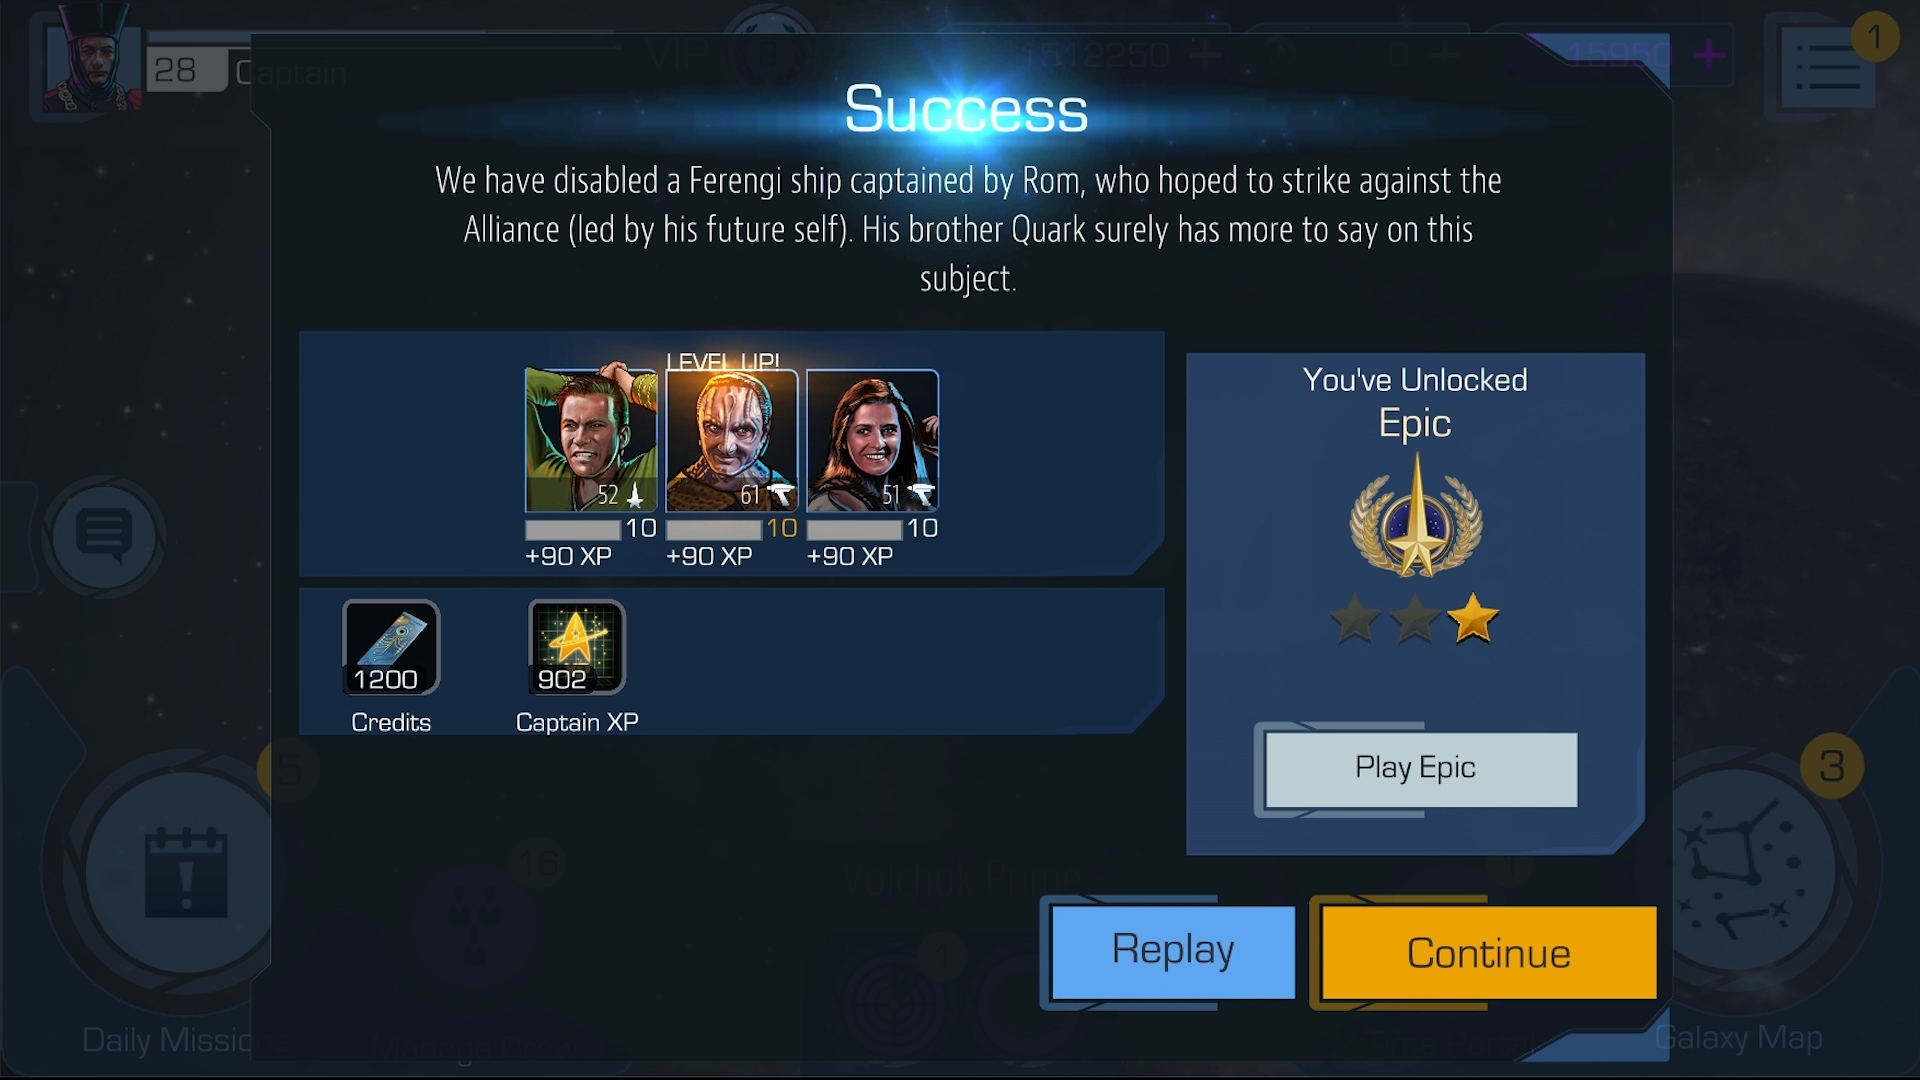 Thanks to a successful Ship Battle, Kirk, Garak, and Vash all hit level 10. Now they're ready for new equipment.